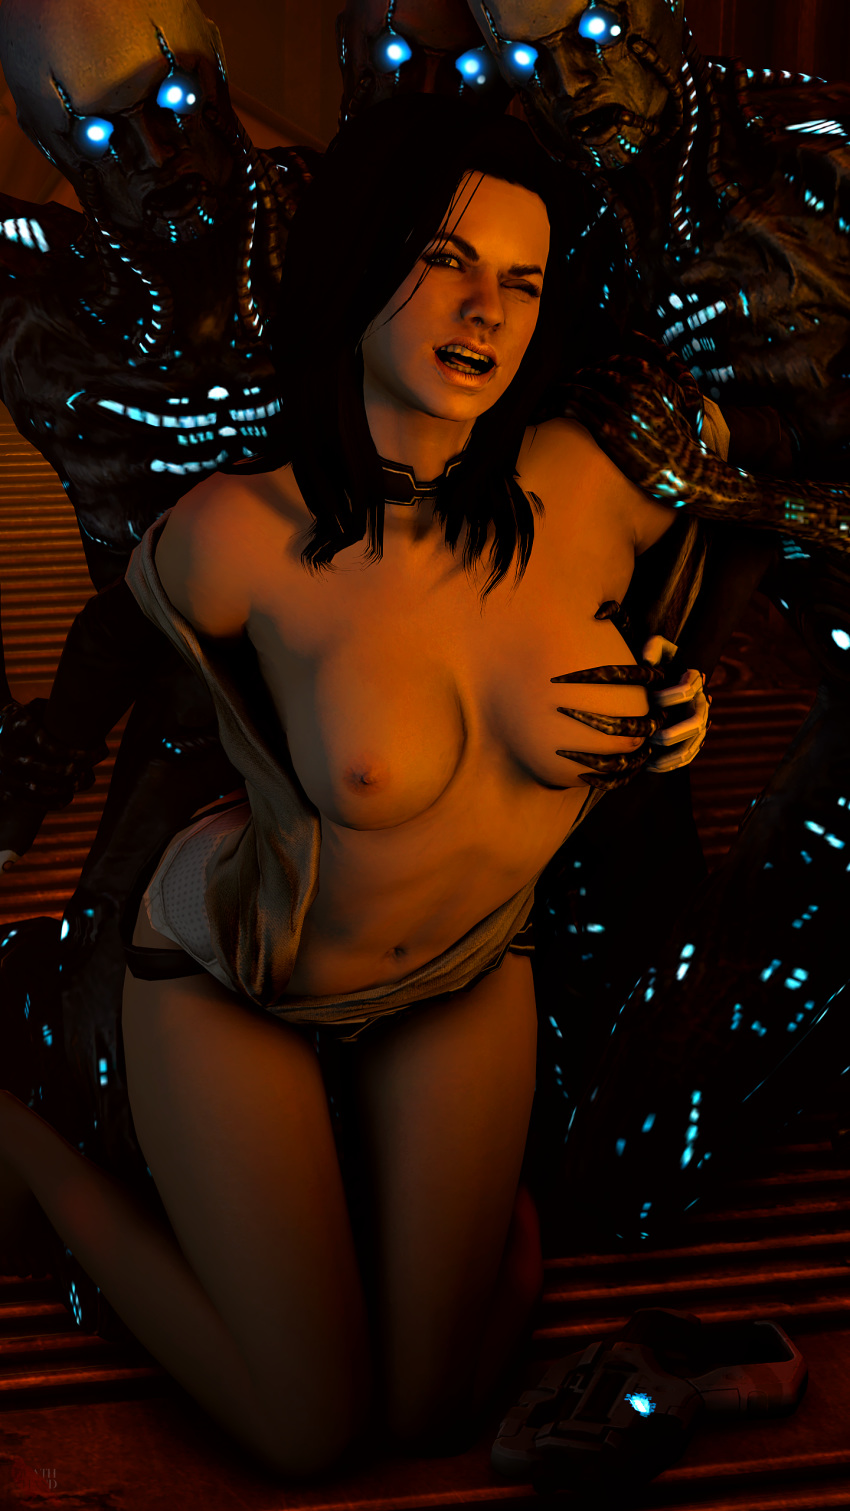 gif effect andromeda porn mass All the way through tentacle hentai